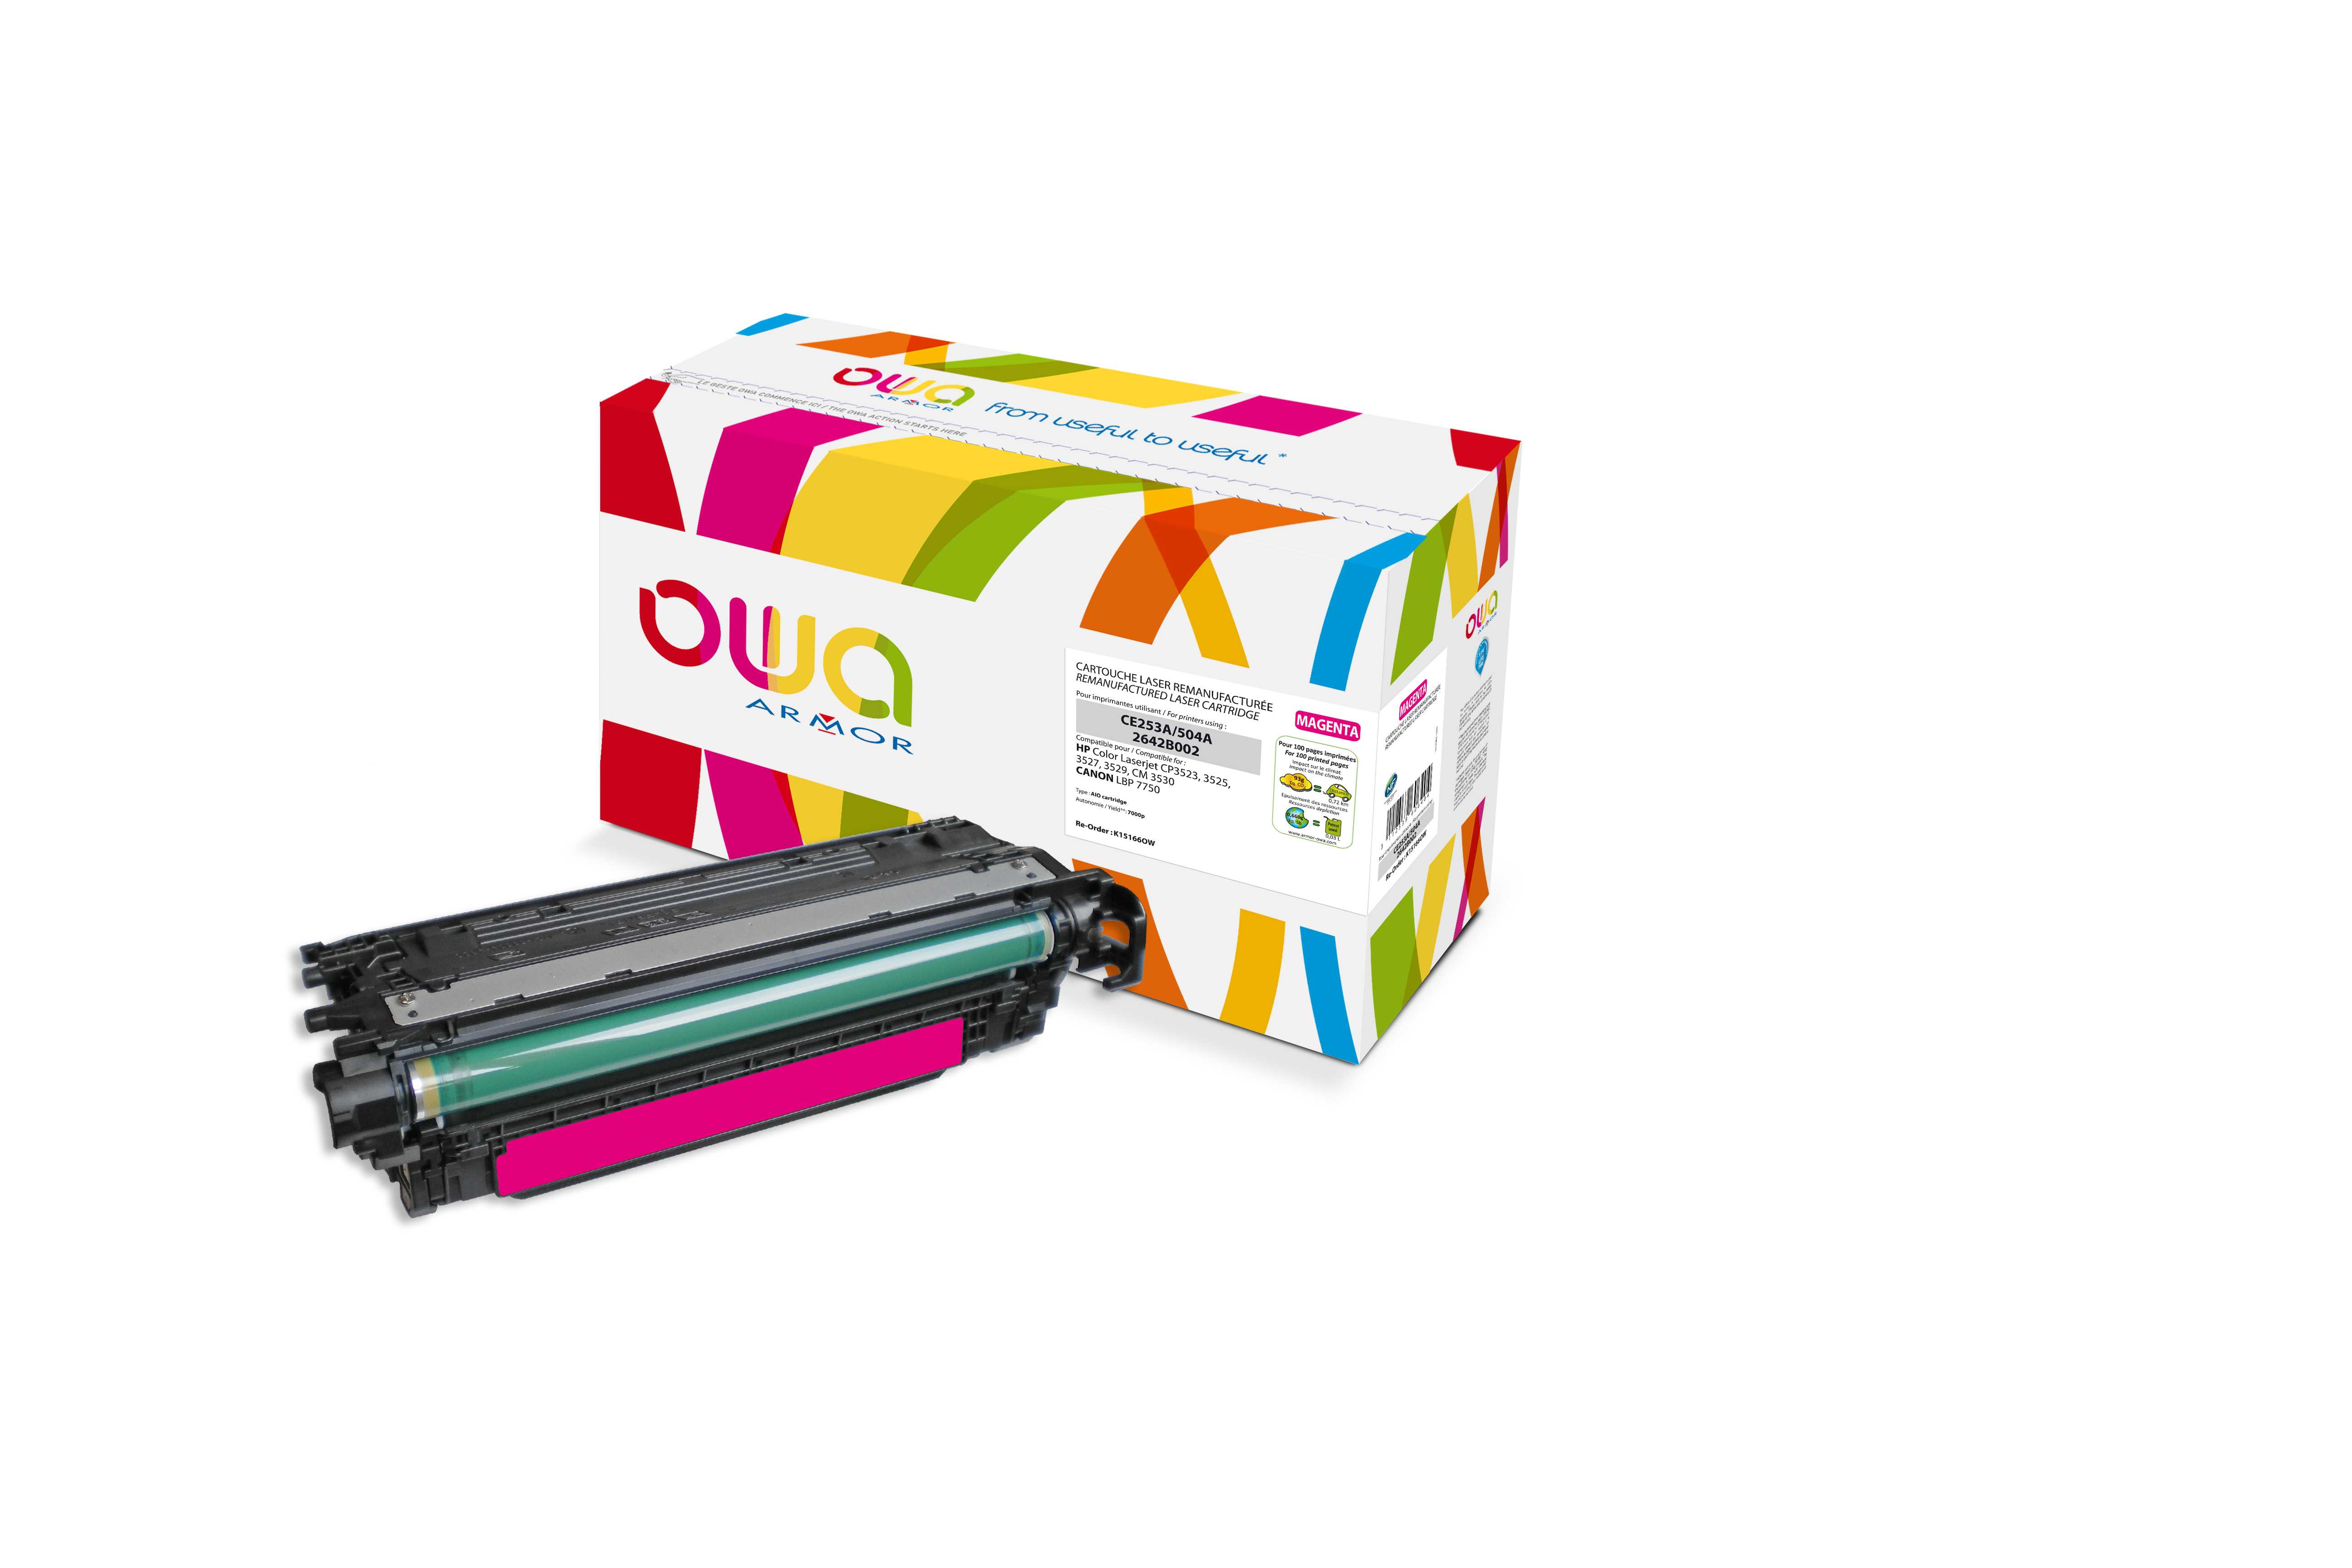 OWA Armor toner pro HP CLJ CP3525 (QCE253A),7.000s, M